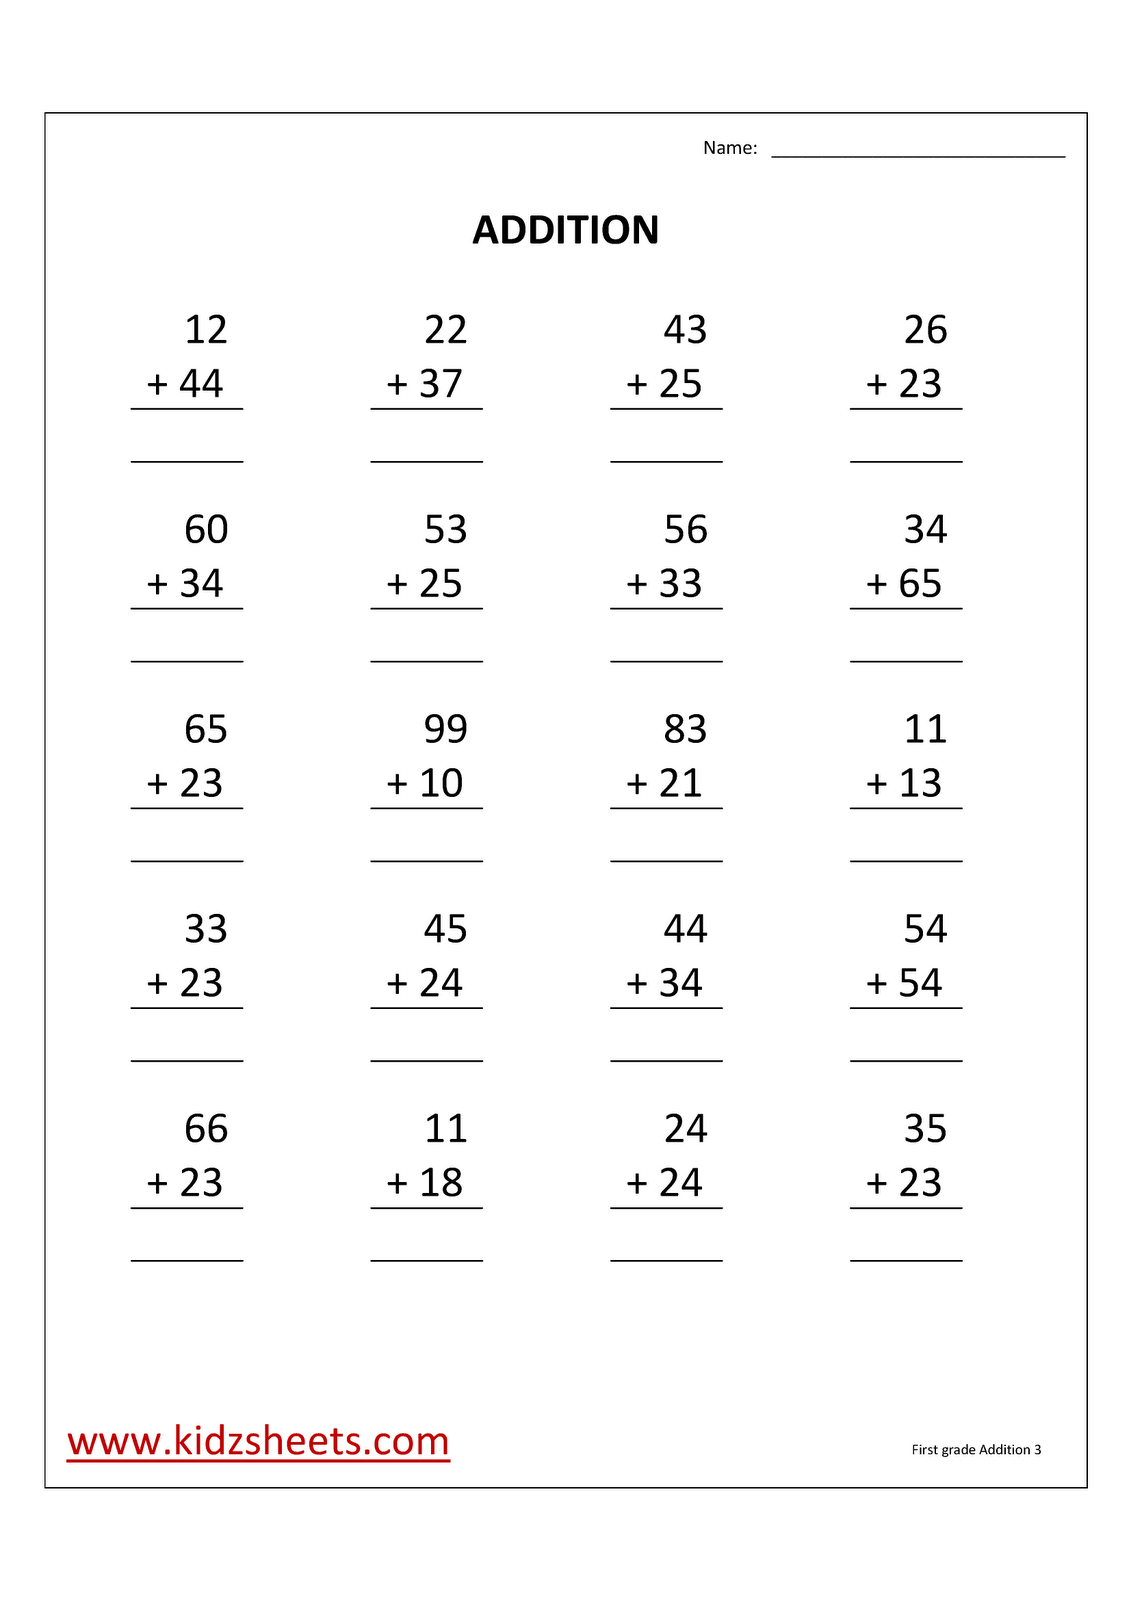 Worksheet Grade 3 Addition Worksheets addition worksheets for grade 3 scalien scalien